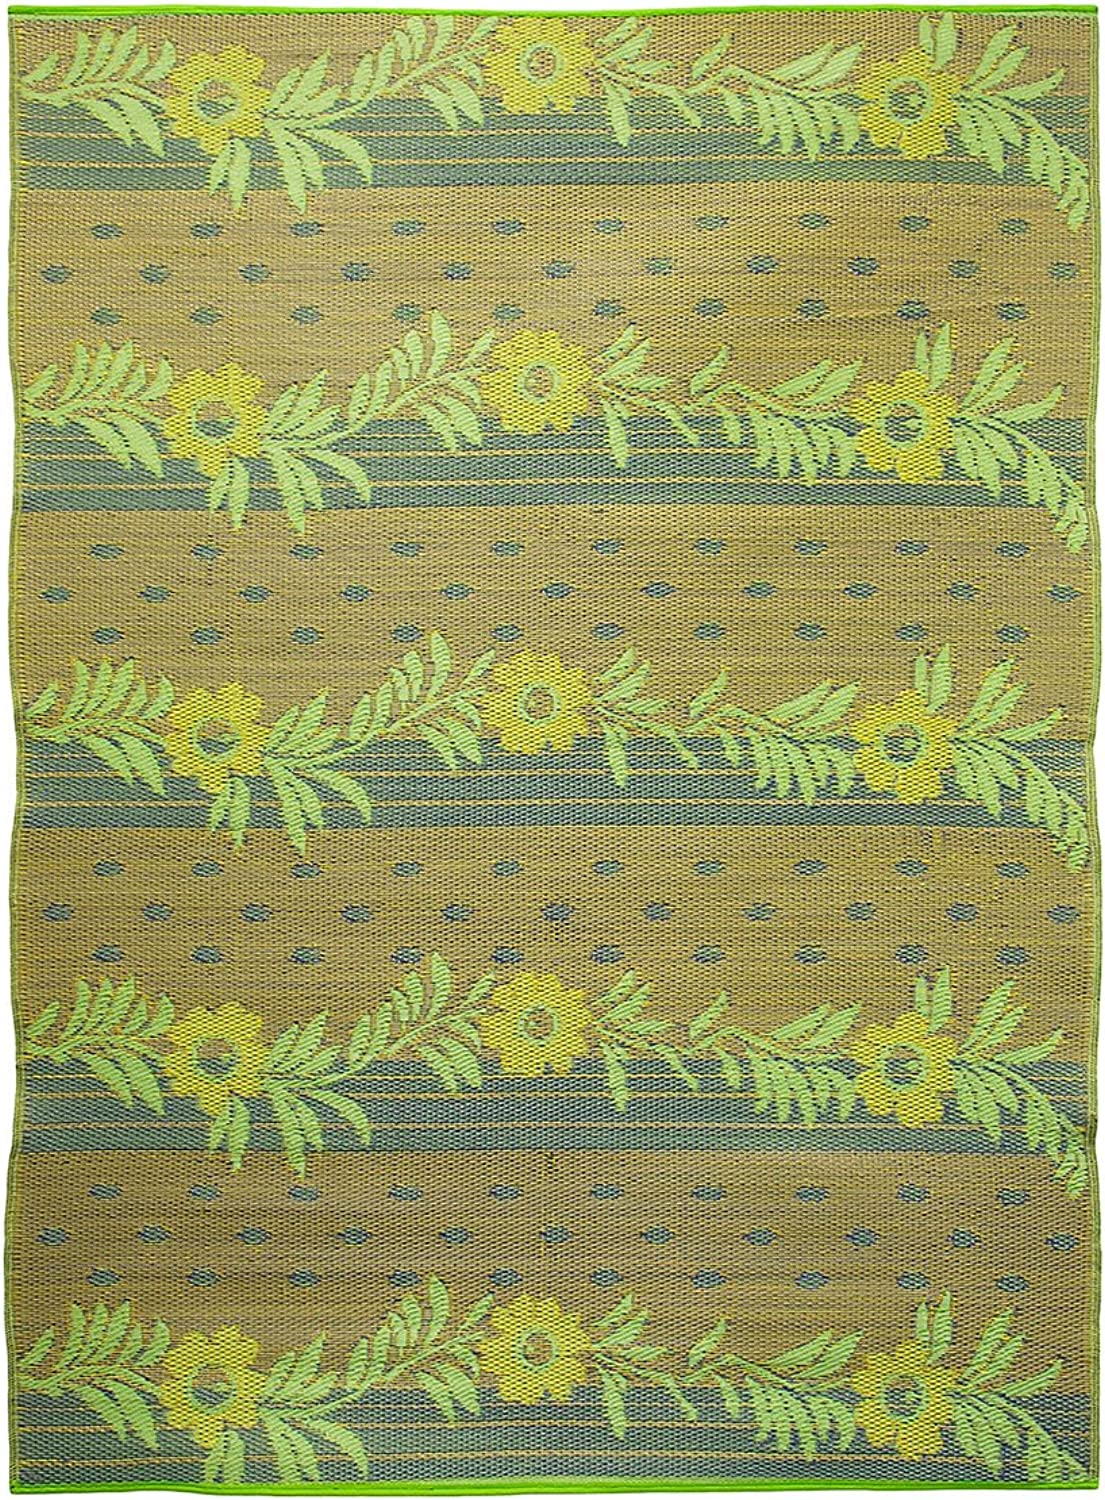 Achla Designs Vines Floor Mat, 6 by 8-Inch, gold